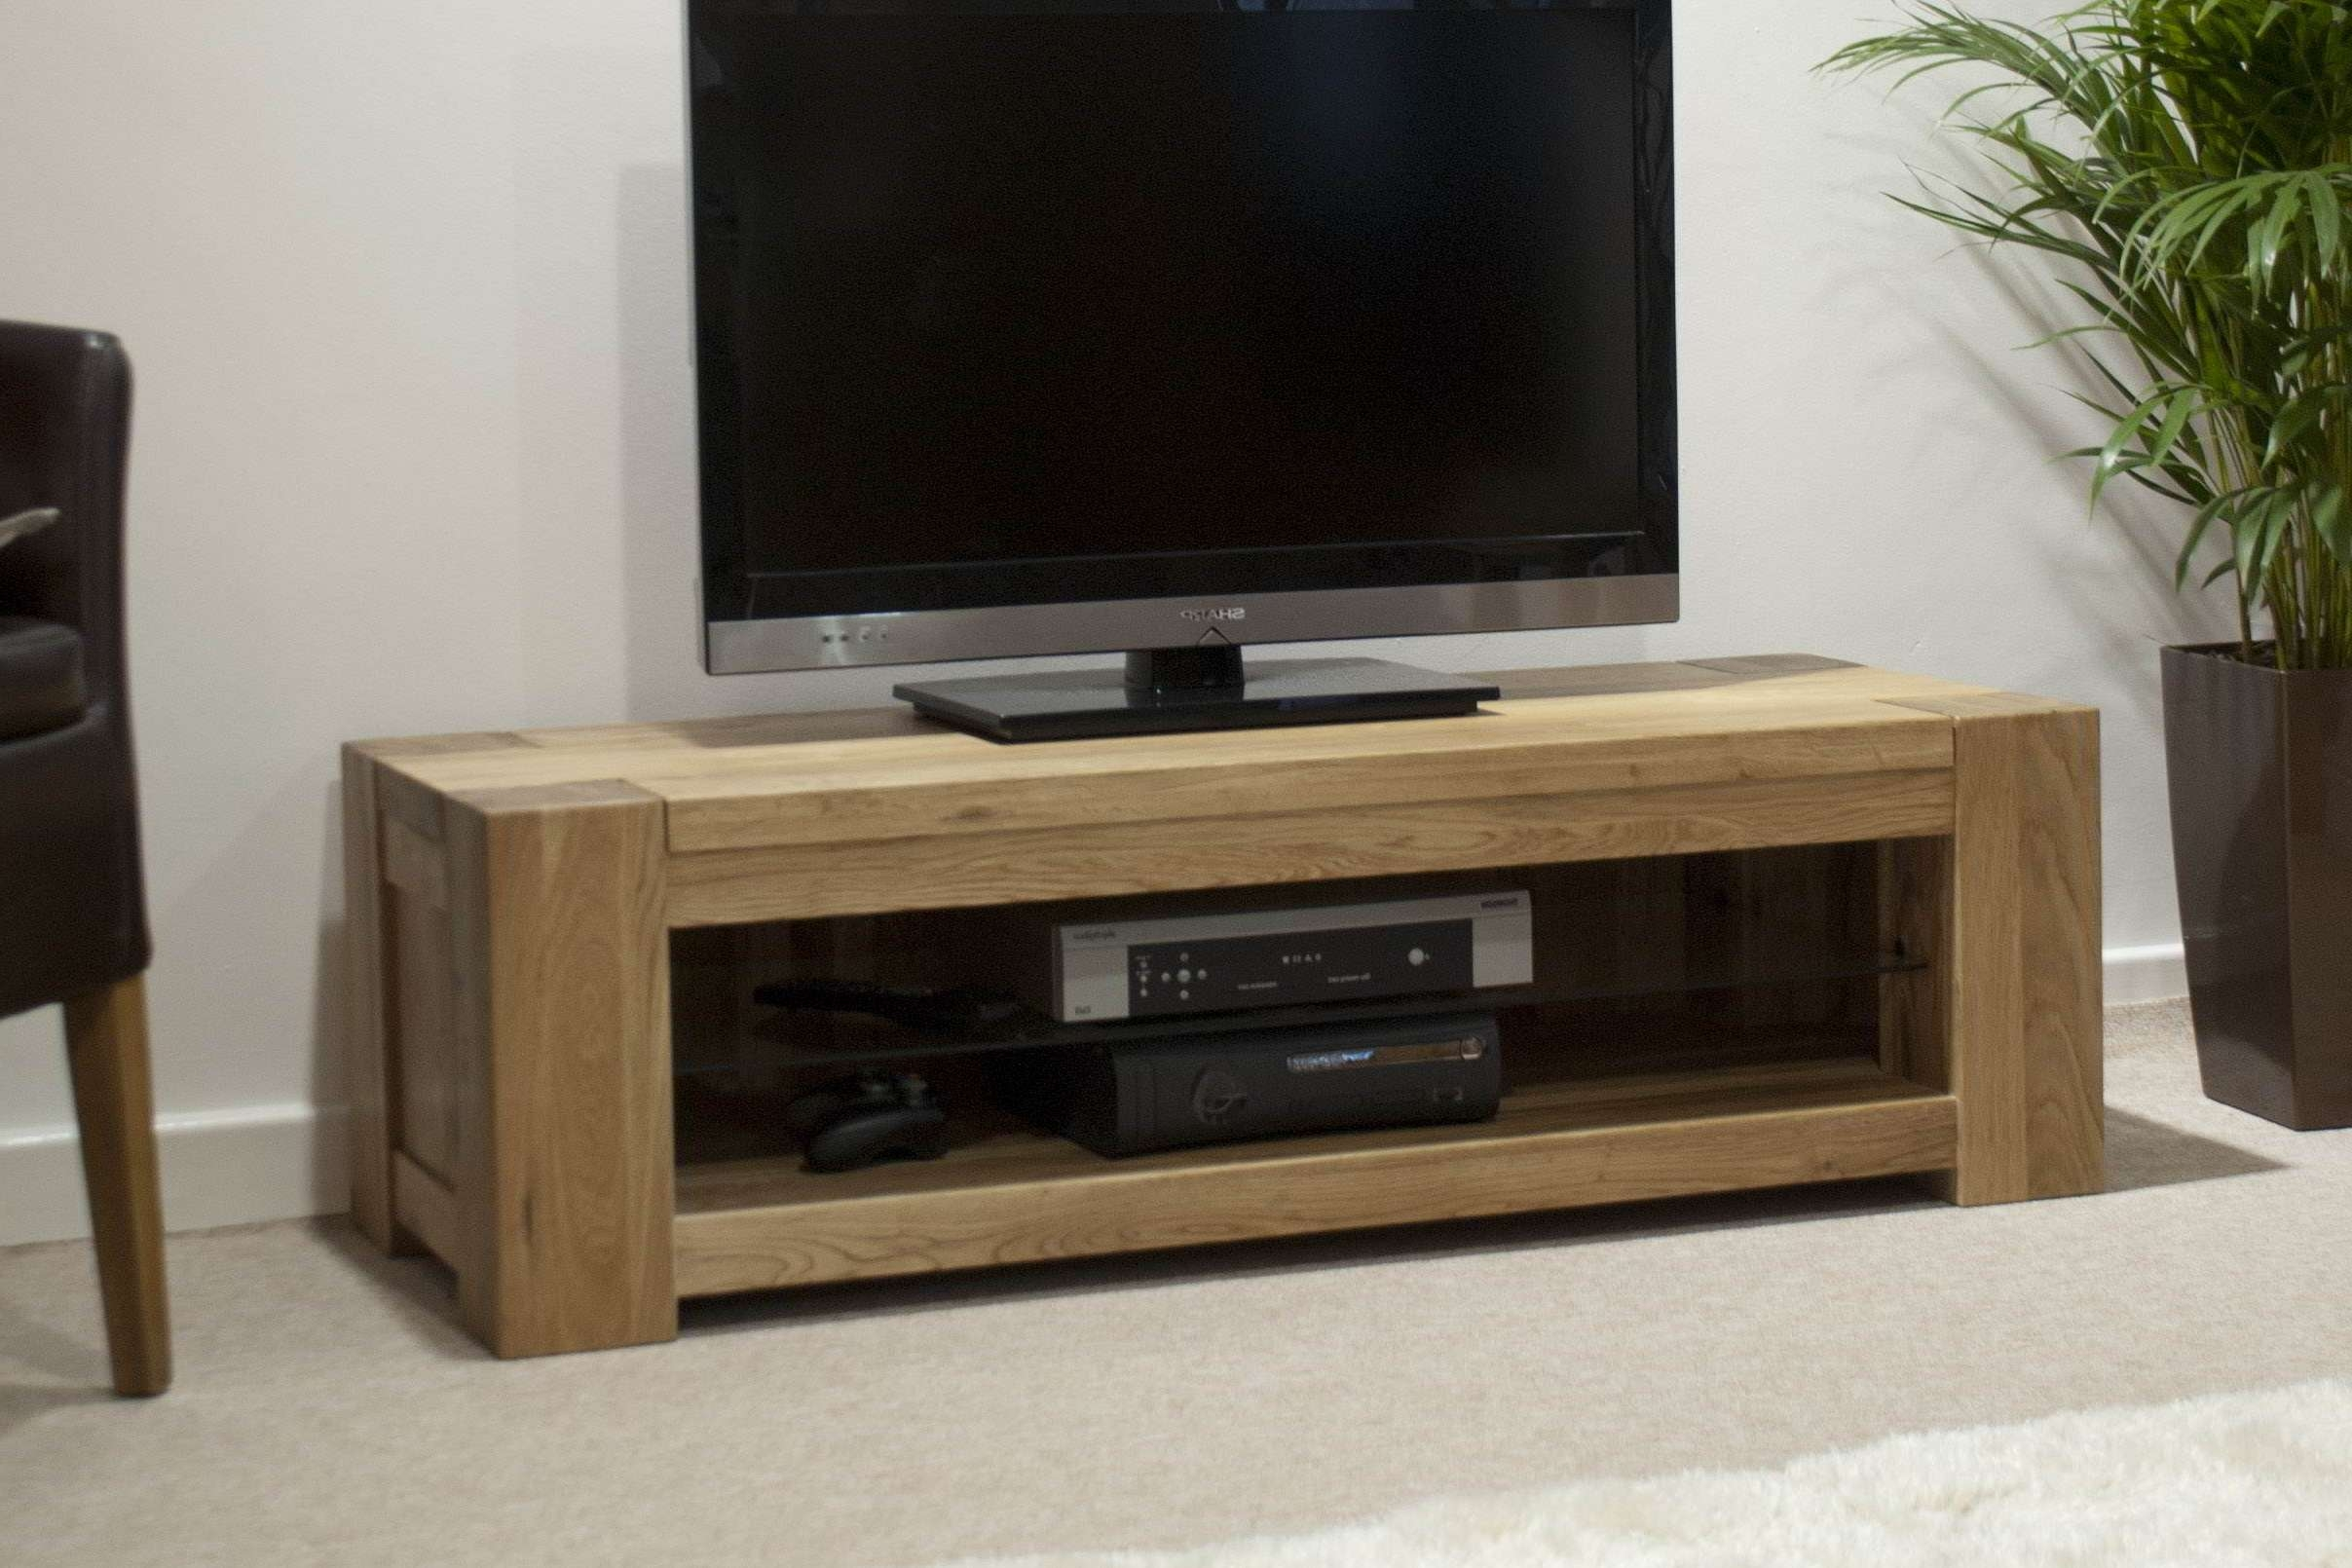 Padova Solid Oak Furniture Plasma Television Cabinet Stand Unit | Ebay Throughout Plasma Tv Stands (View 9 of 15)